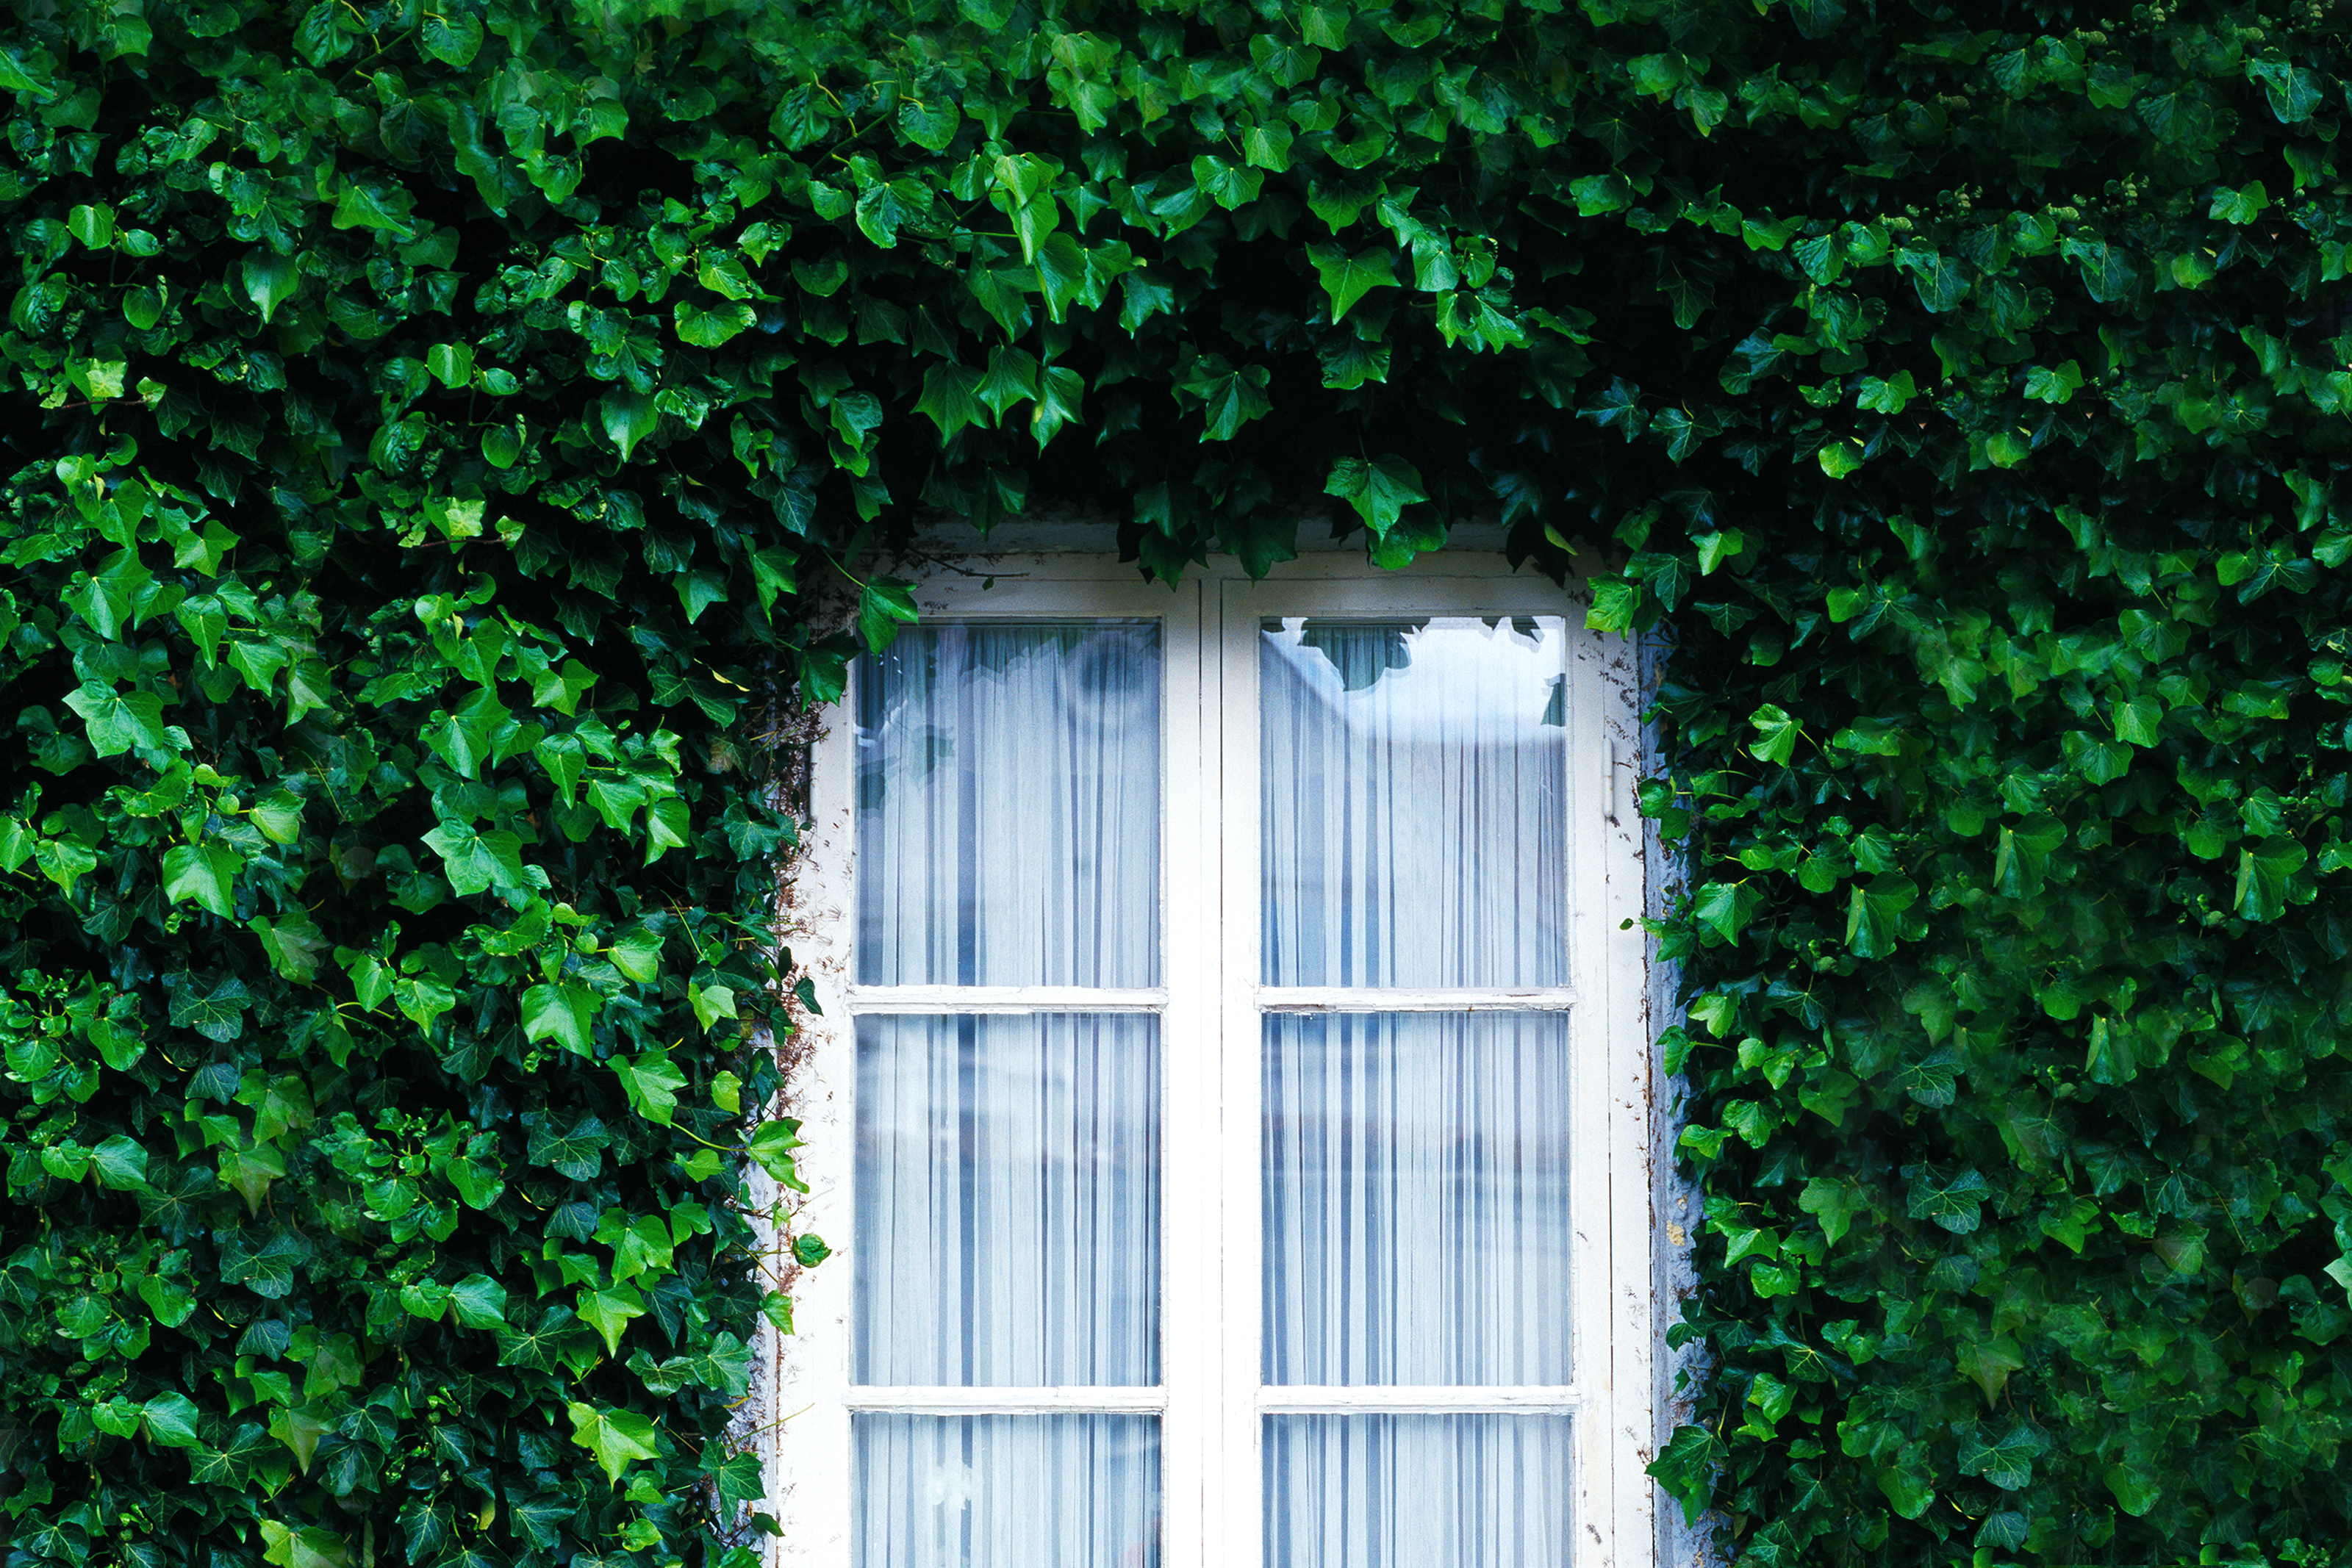 Ivy-covered brick wall of house